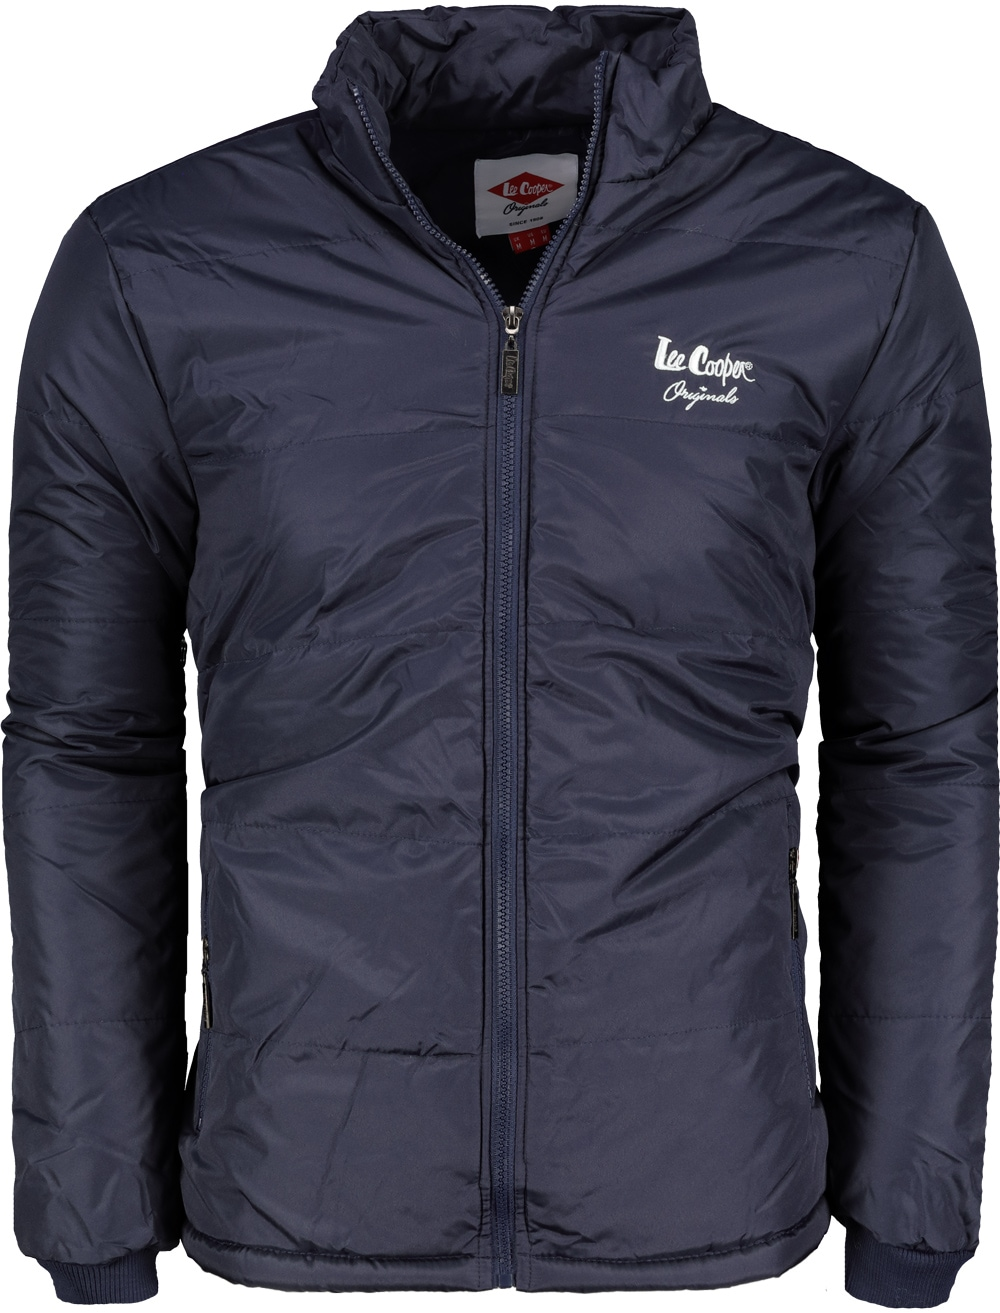 Lee Cooper Padded pánska bunda